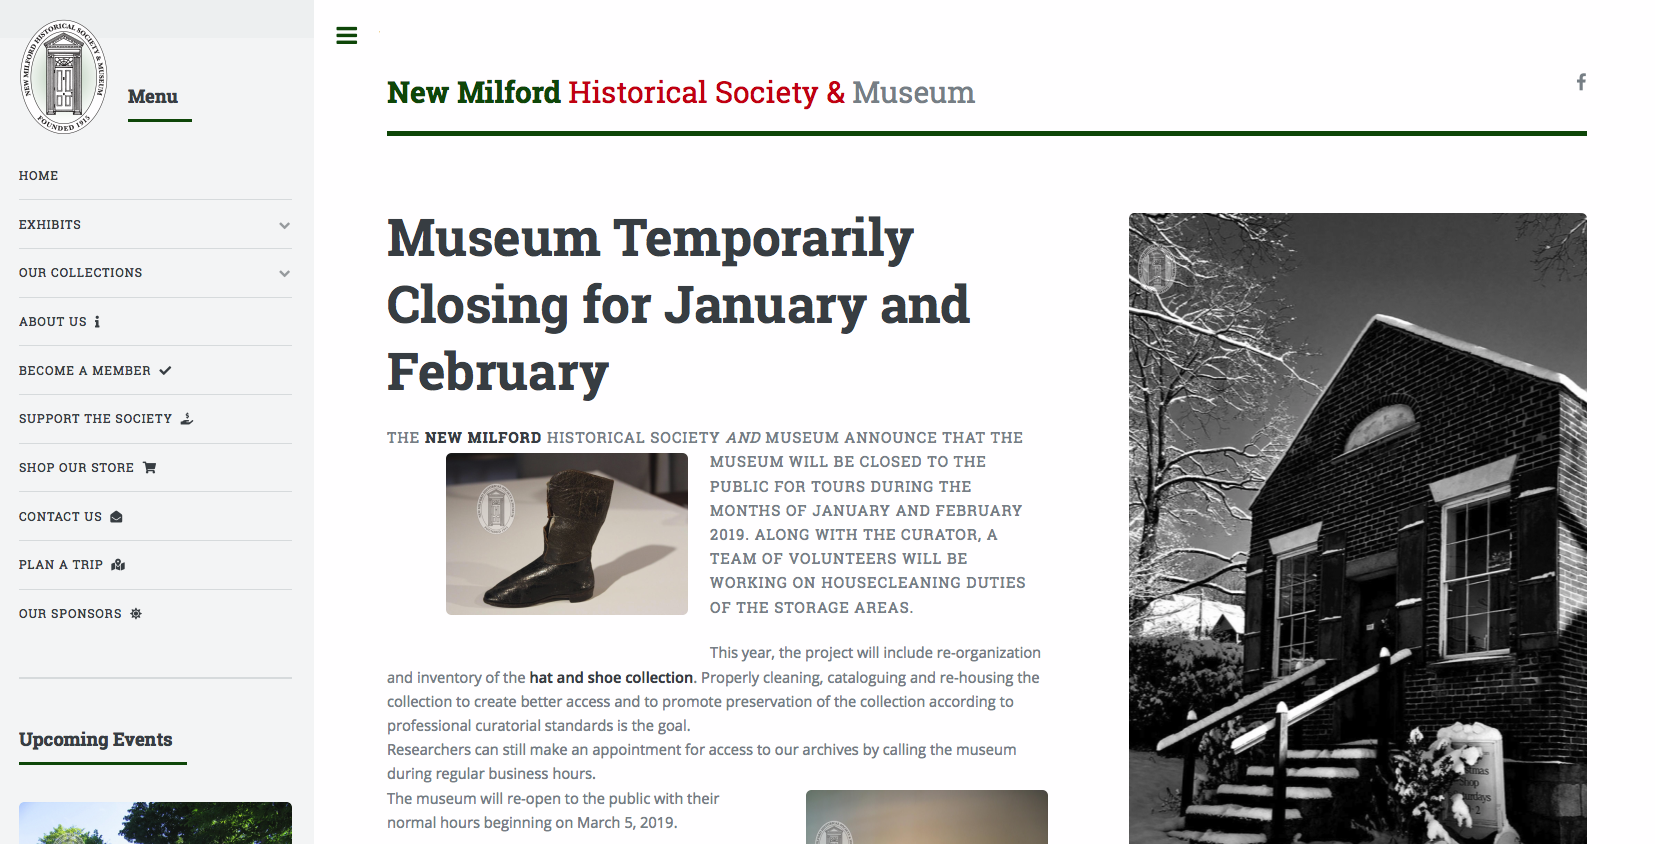 new milford historical society